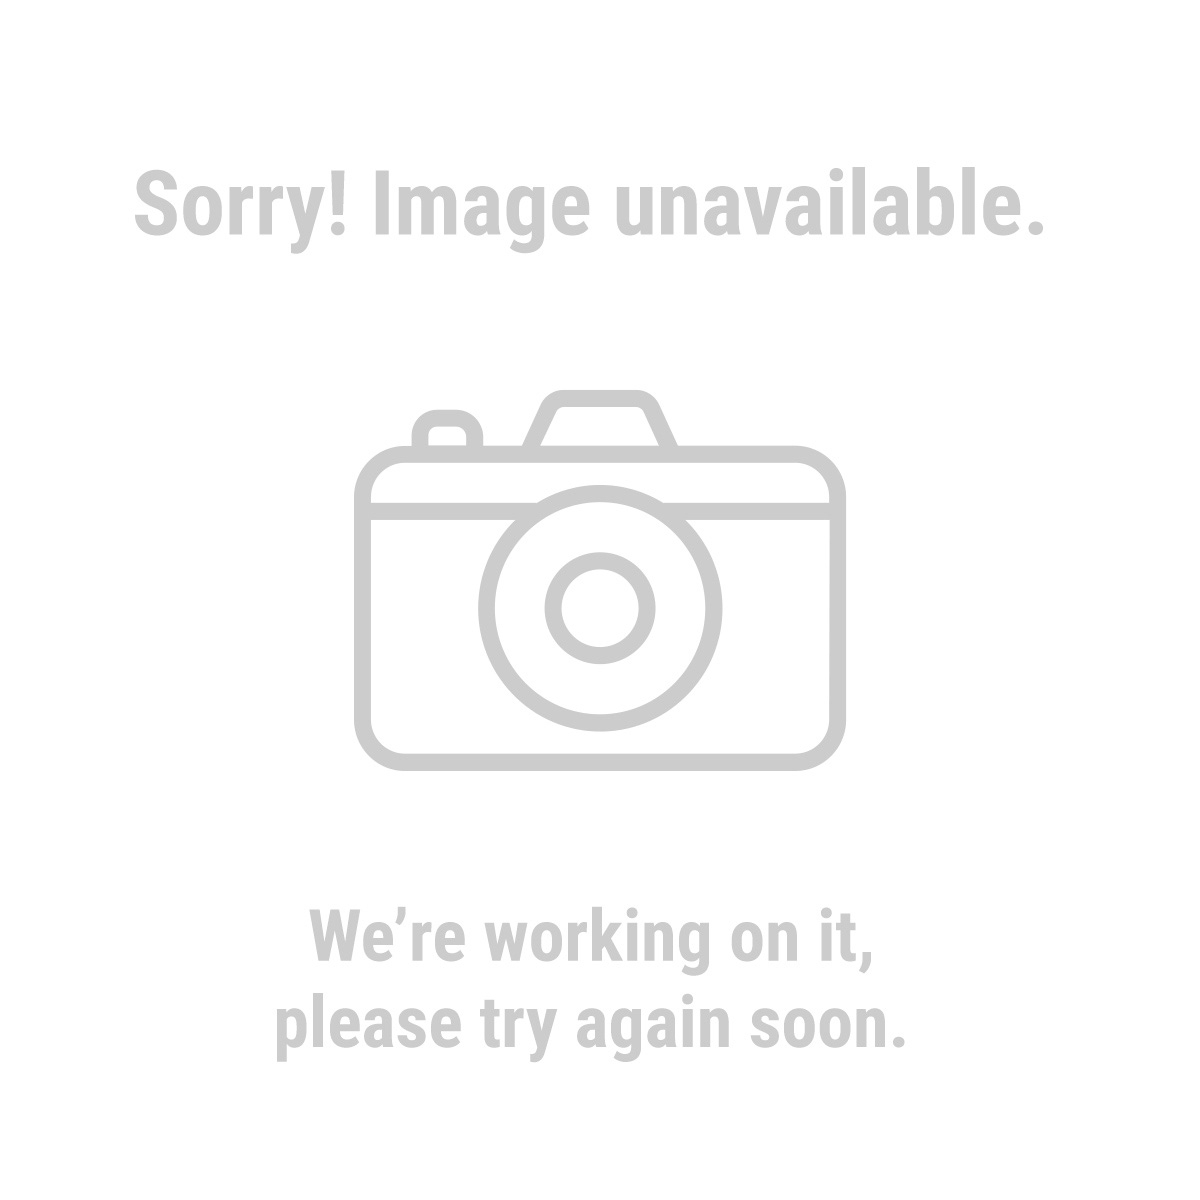 "40604 3 Piece 1-1/2"" Keyed-Alike Padlocks"